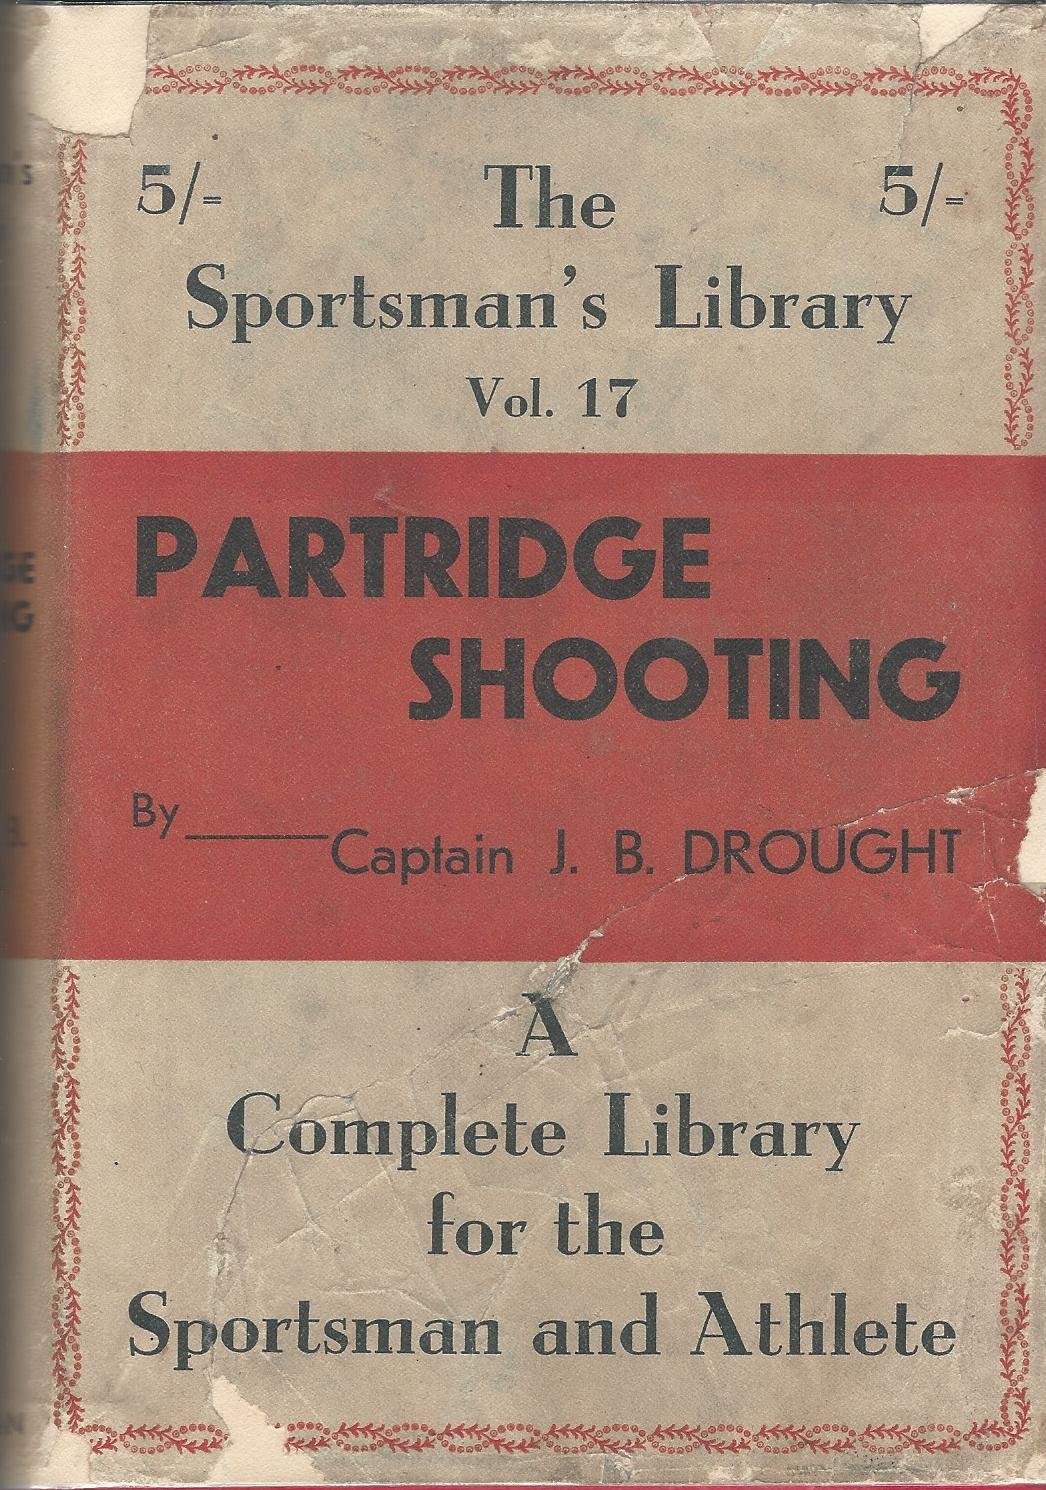 Image for Partridge Shooting. The Sportsman's Library Vol. 17.